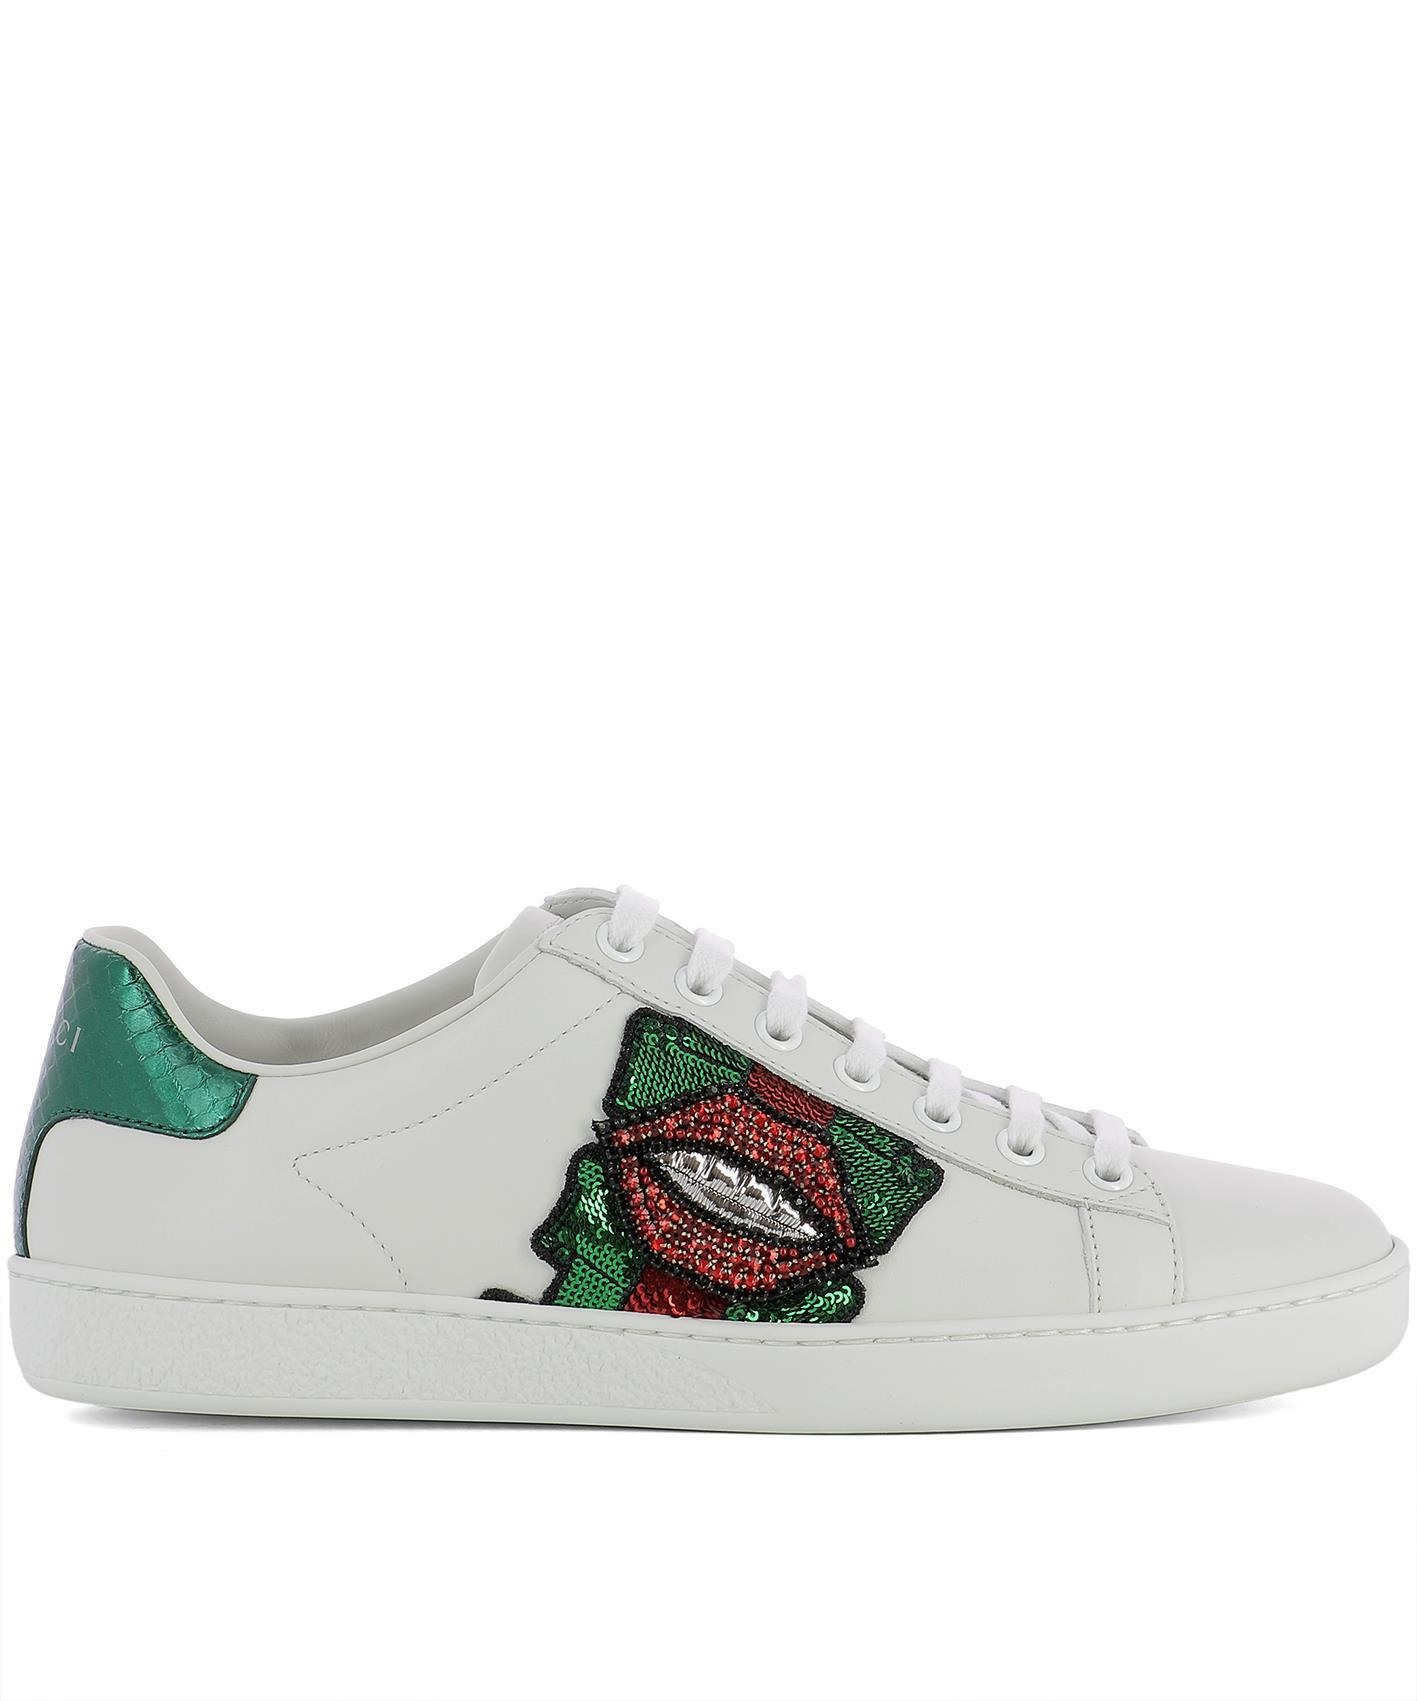 2220ab4384c Gucci Lips Sequin Sneakers in White - Lyst